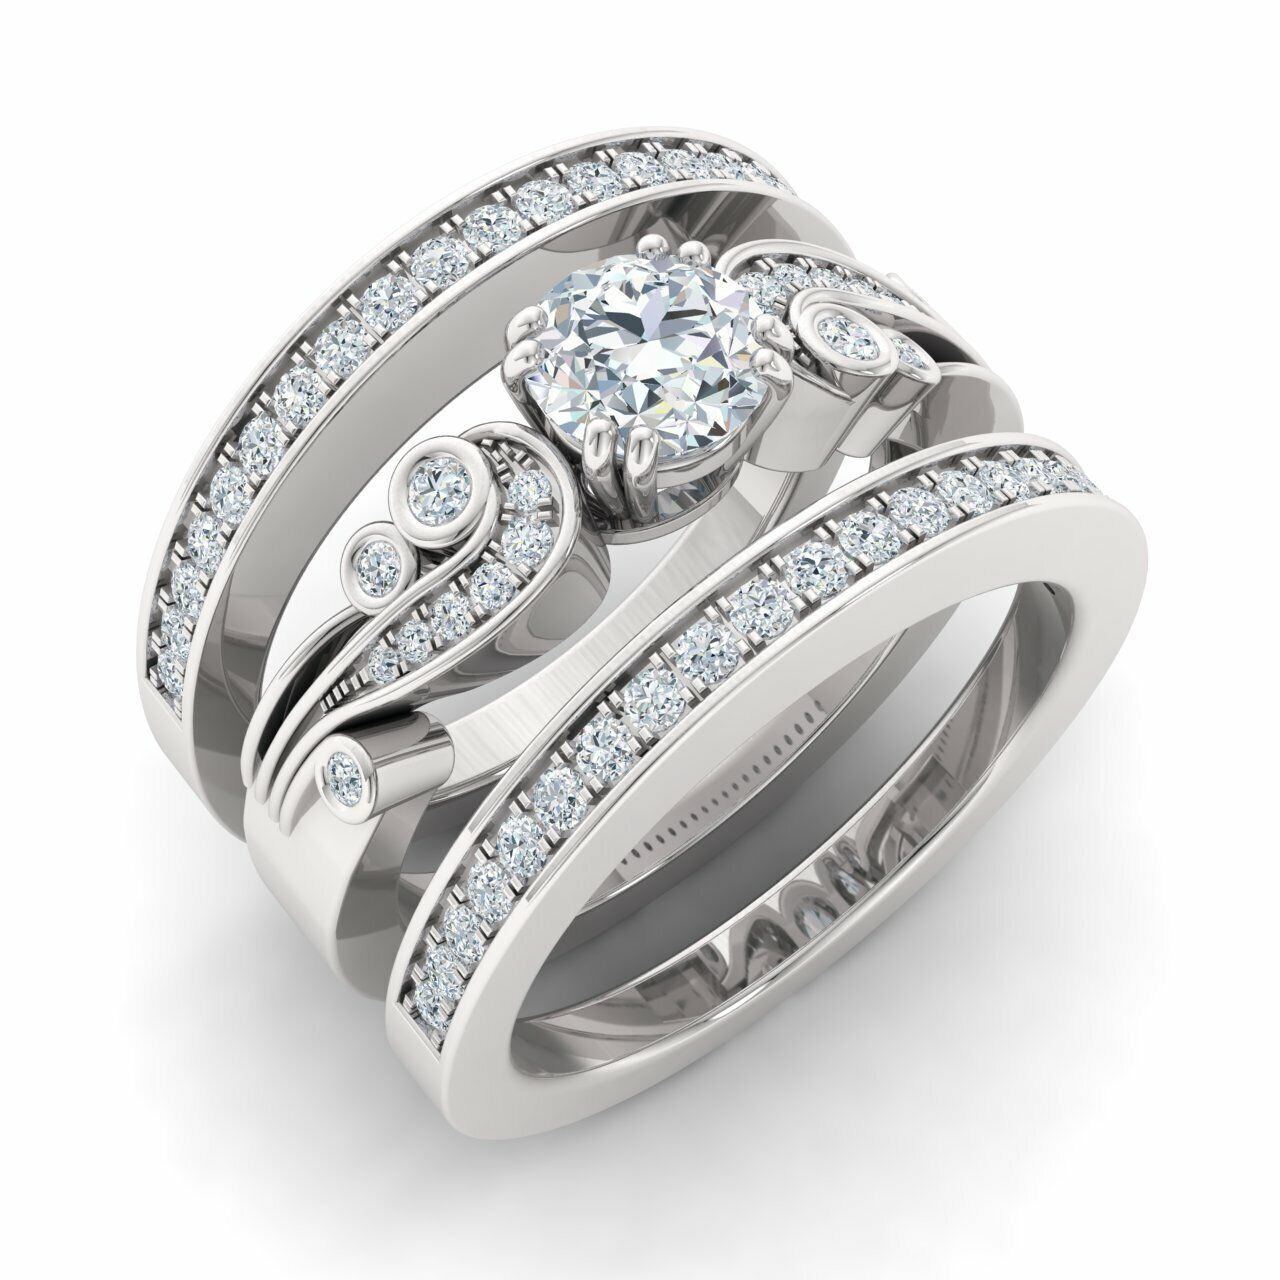 Natural Diamond Bridal Engagement Ring w/ 2 Matching Bands Solid 14k White Gold